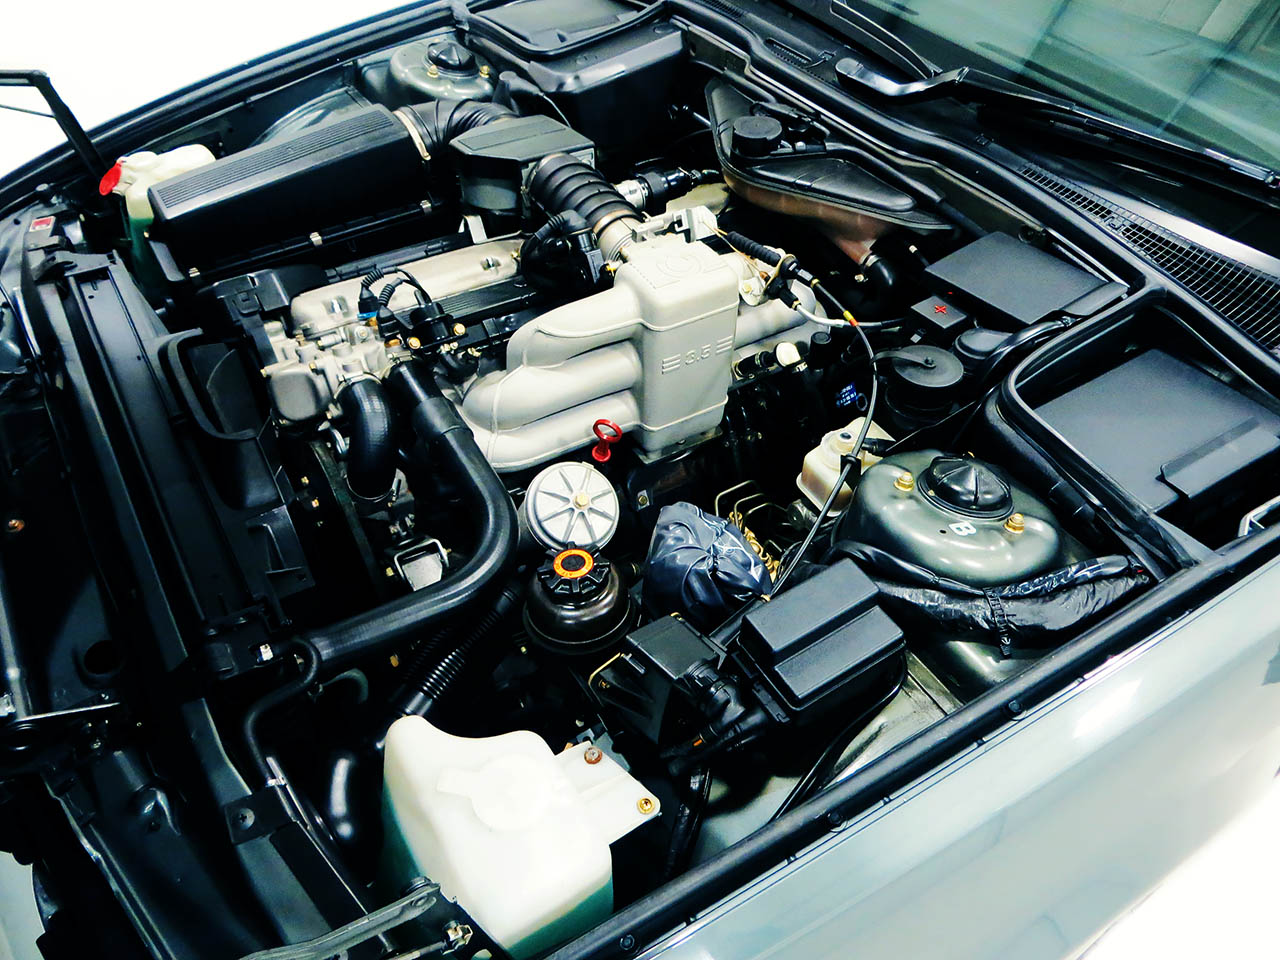 Bmw M30b35 Motor Elad M30 Engine Diagram Full Ing Guide 535i E34 Engined 5 Series Drive My Blogs